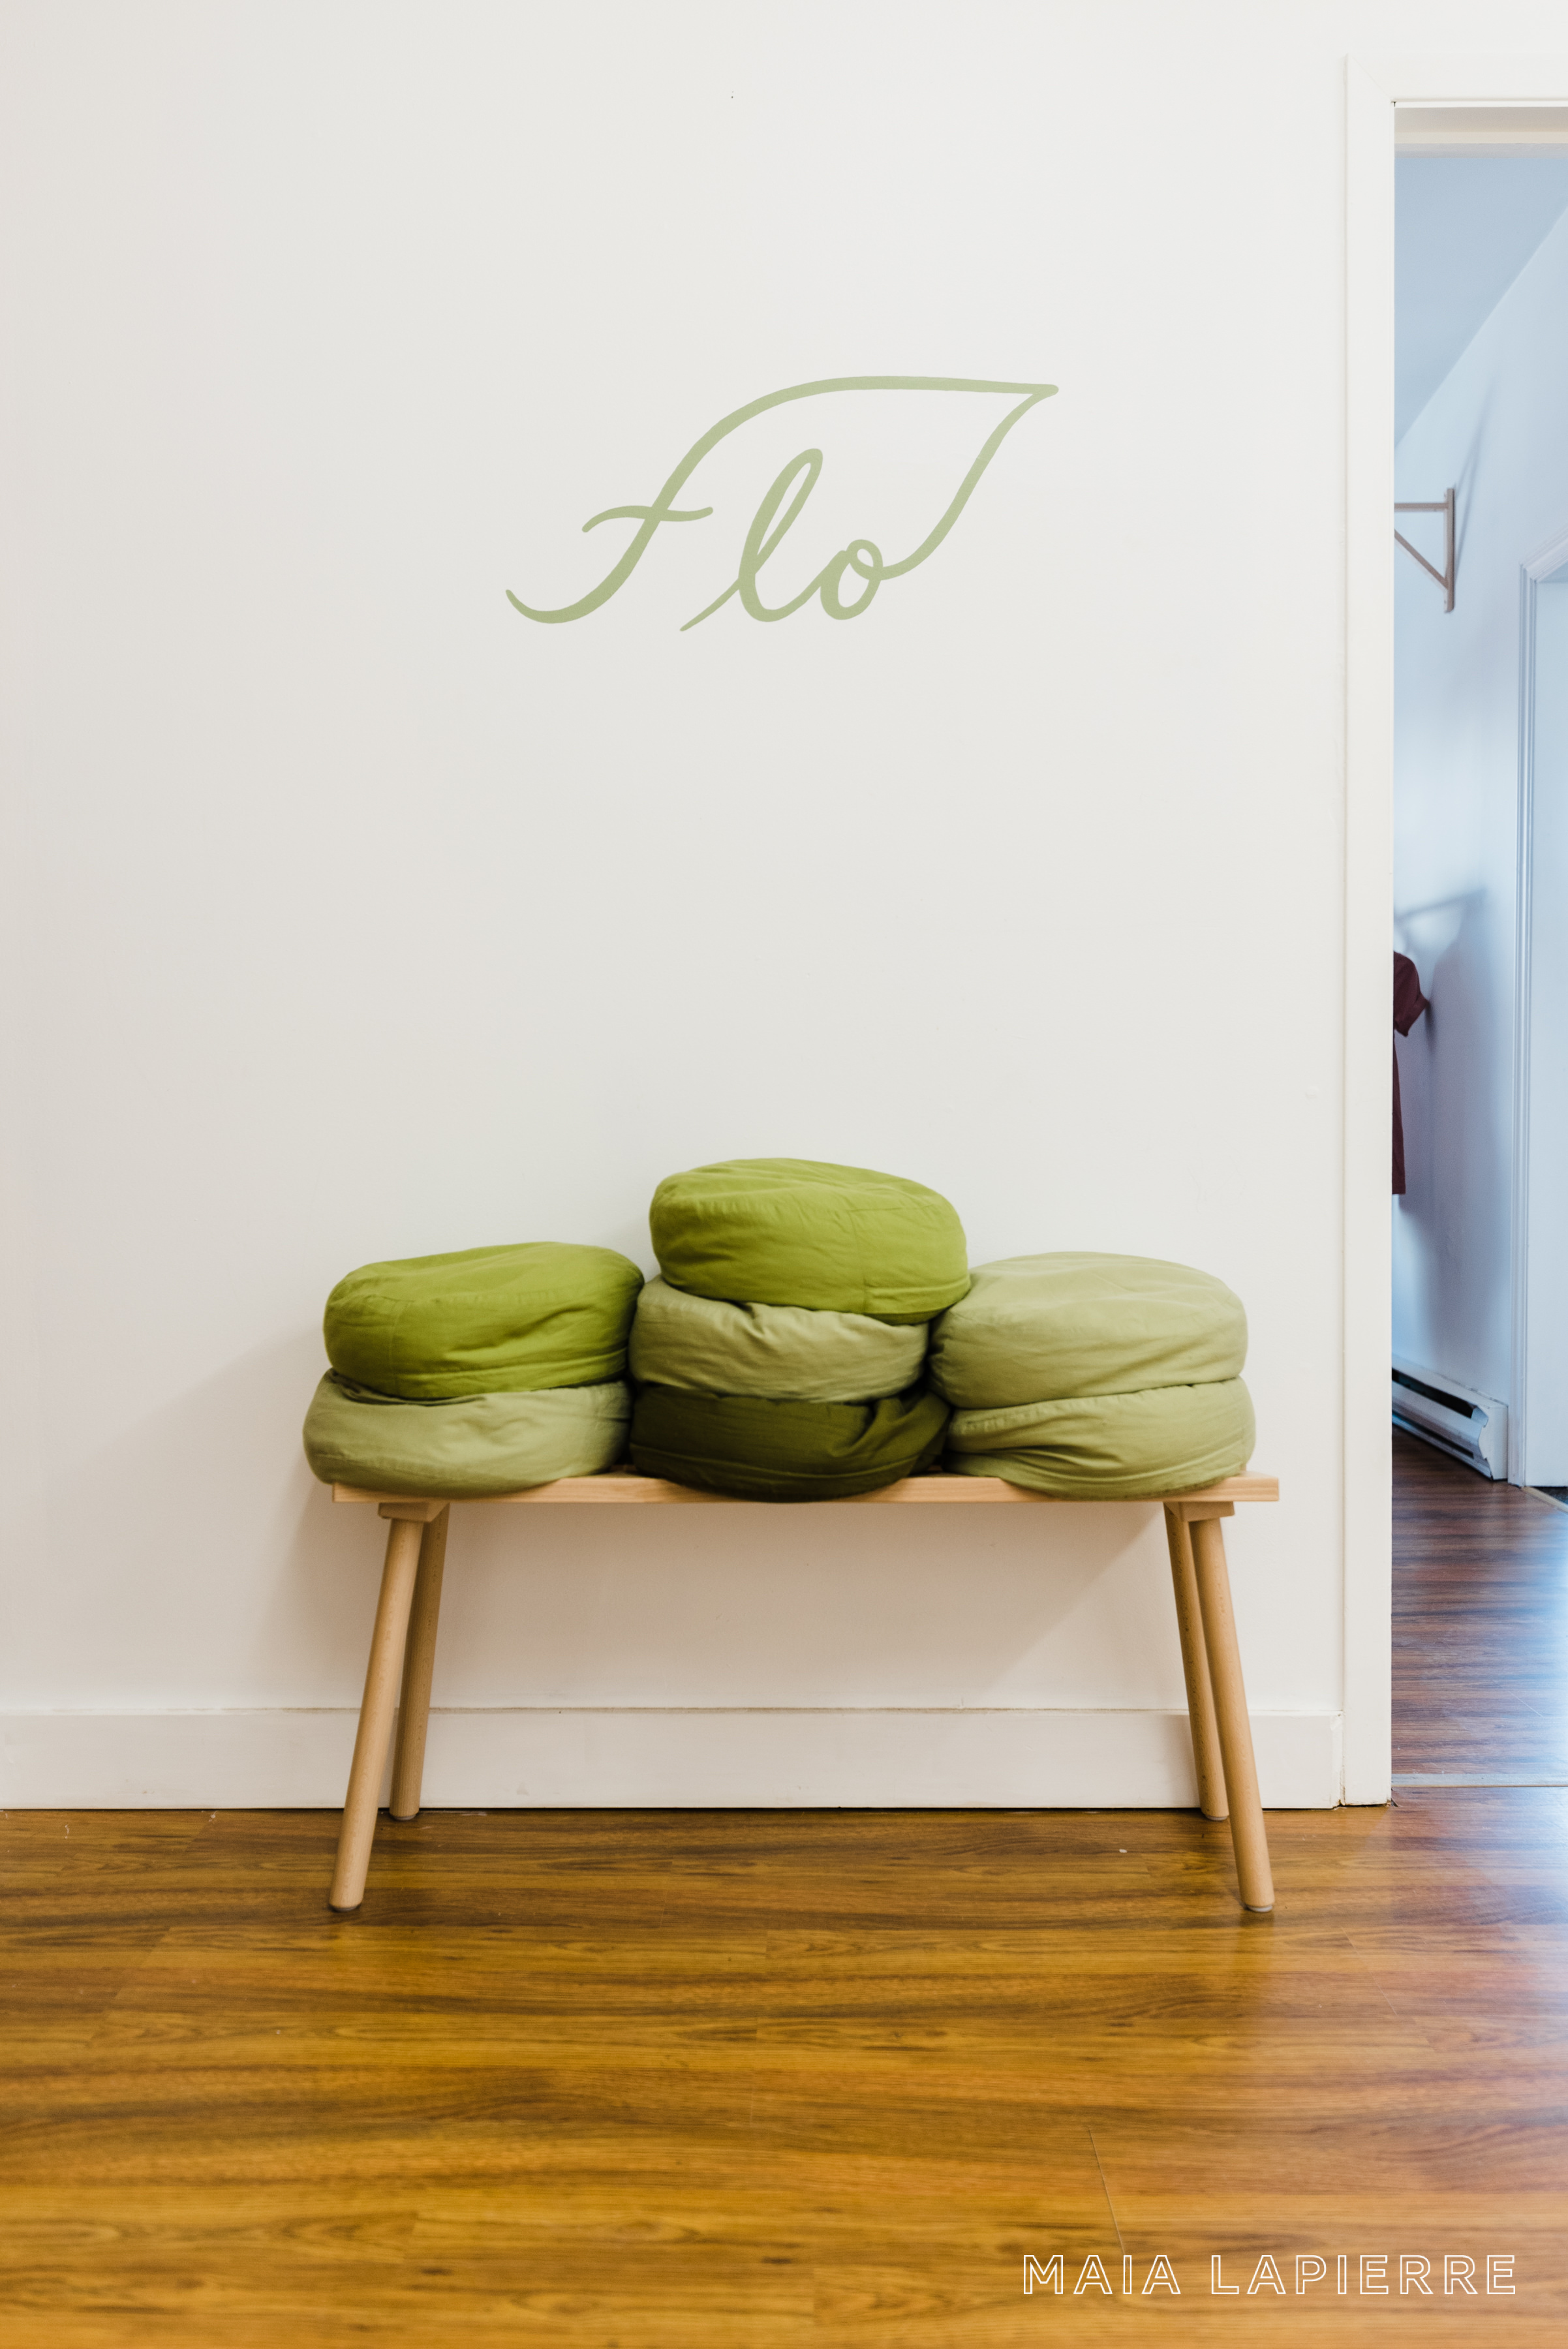 Maia LaPierre Interiors - Flo Meditation Studio Entry